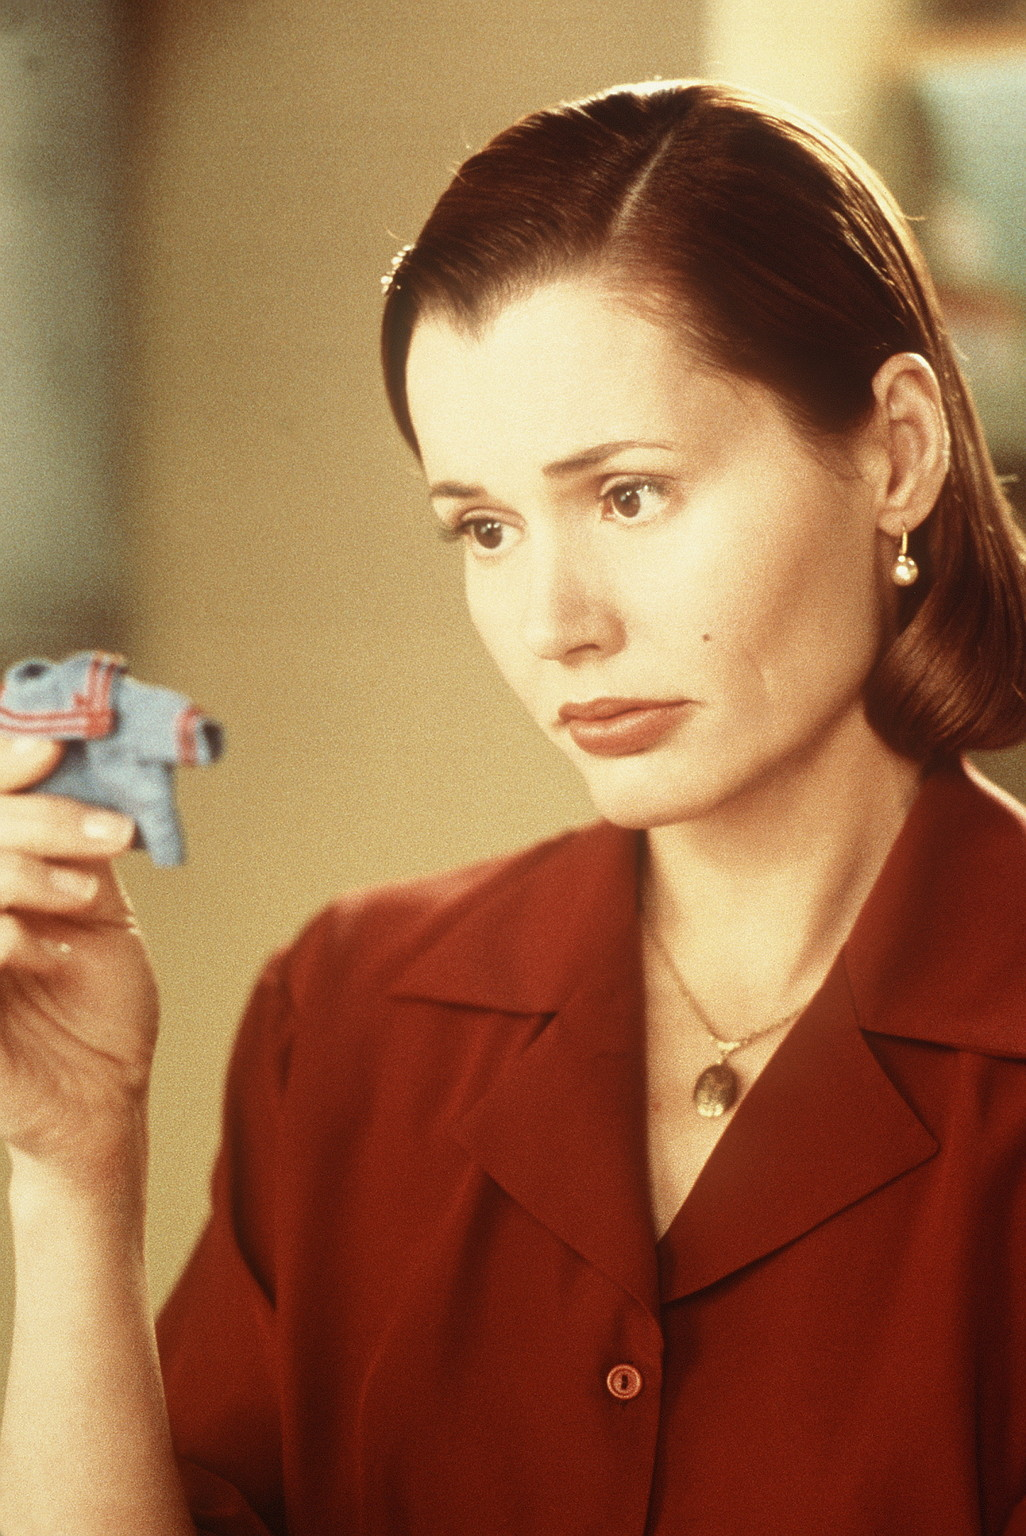 geena davis stuart little - photo #3